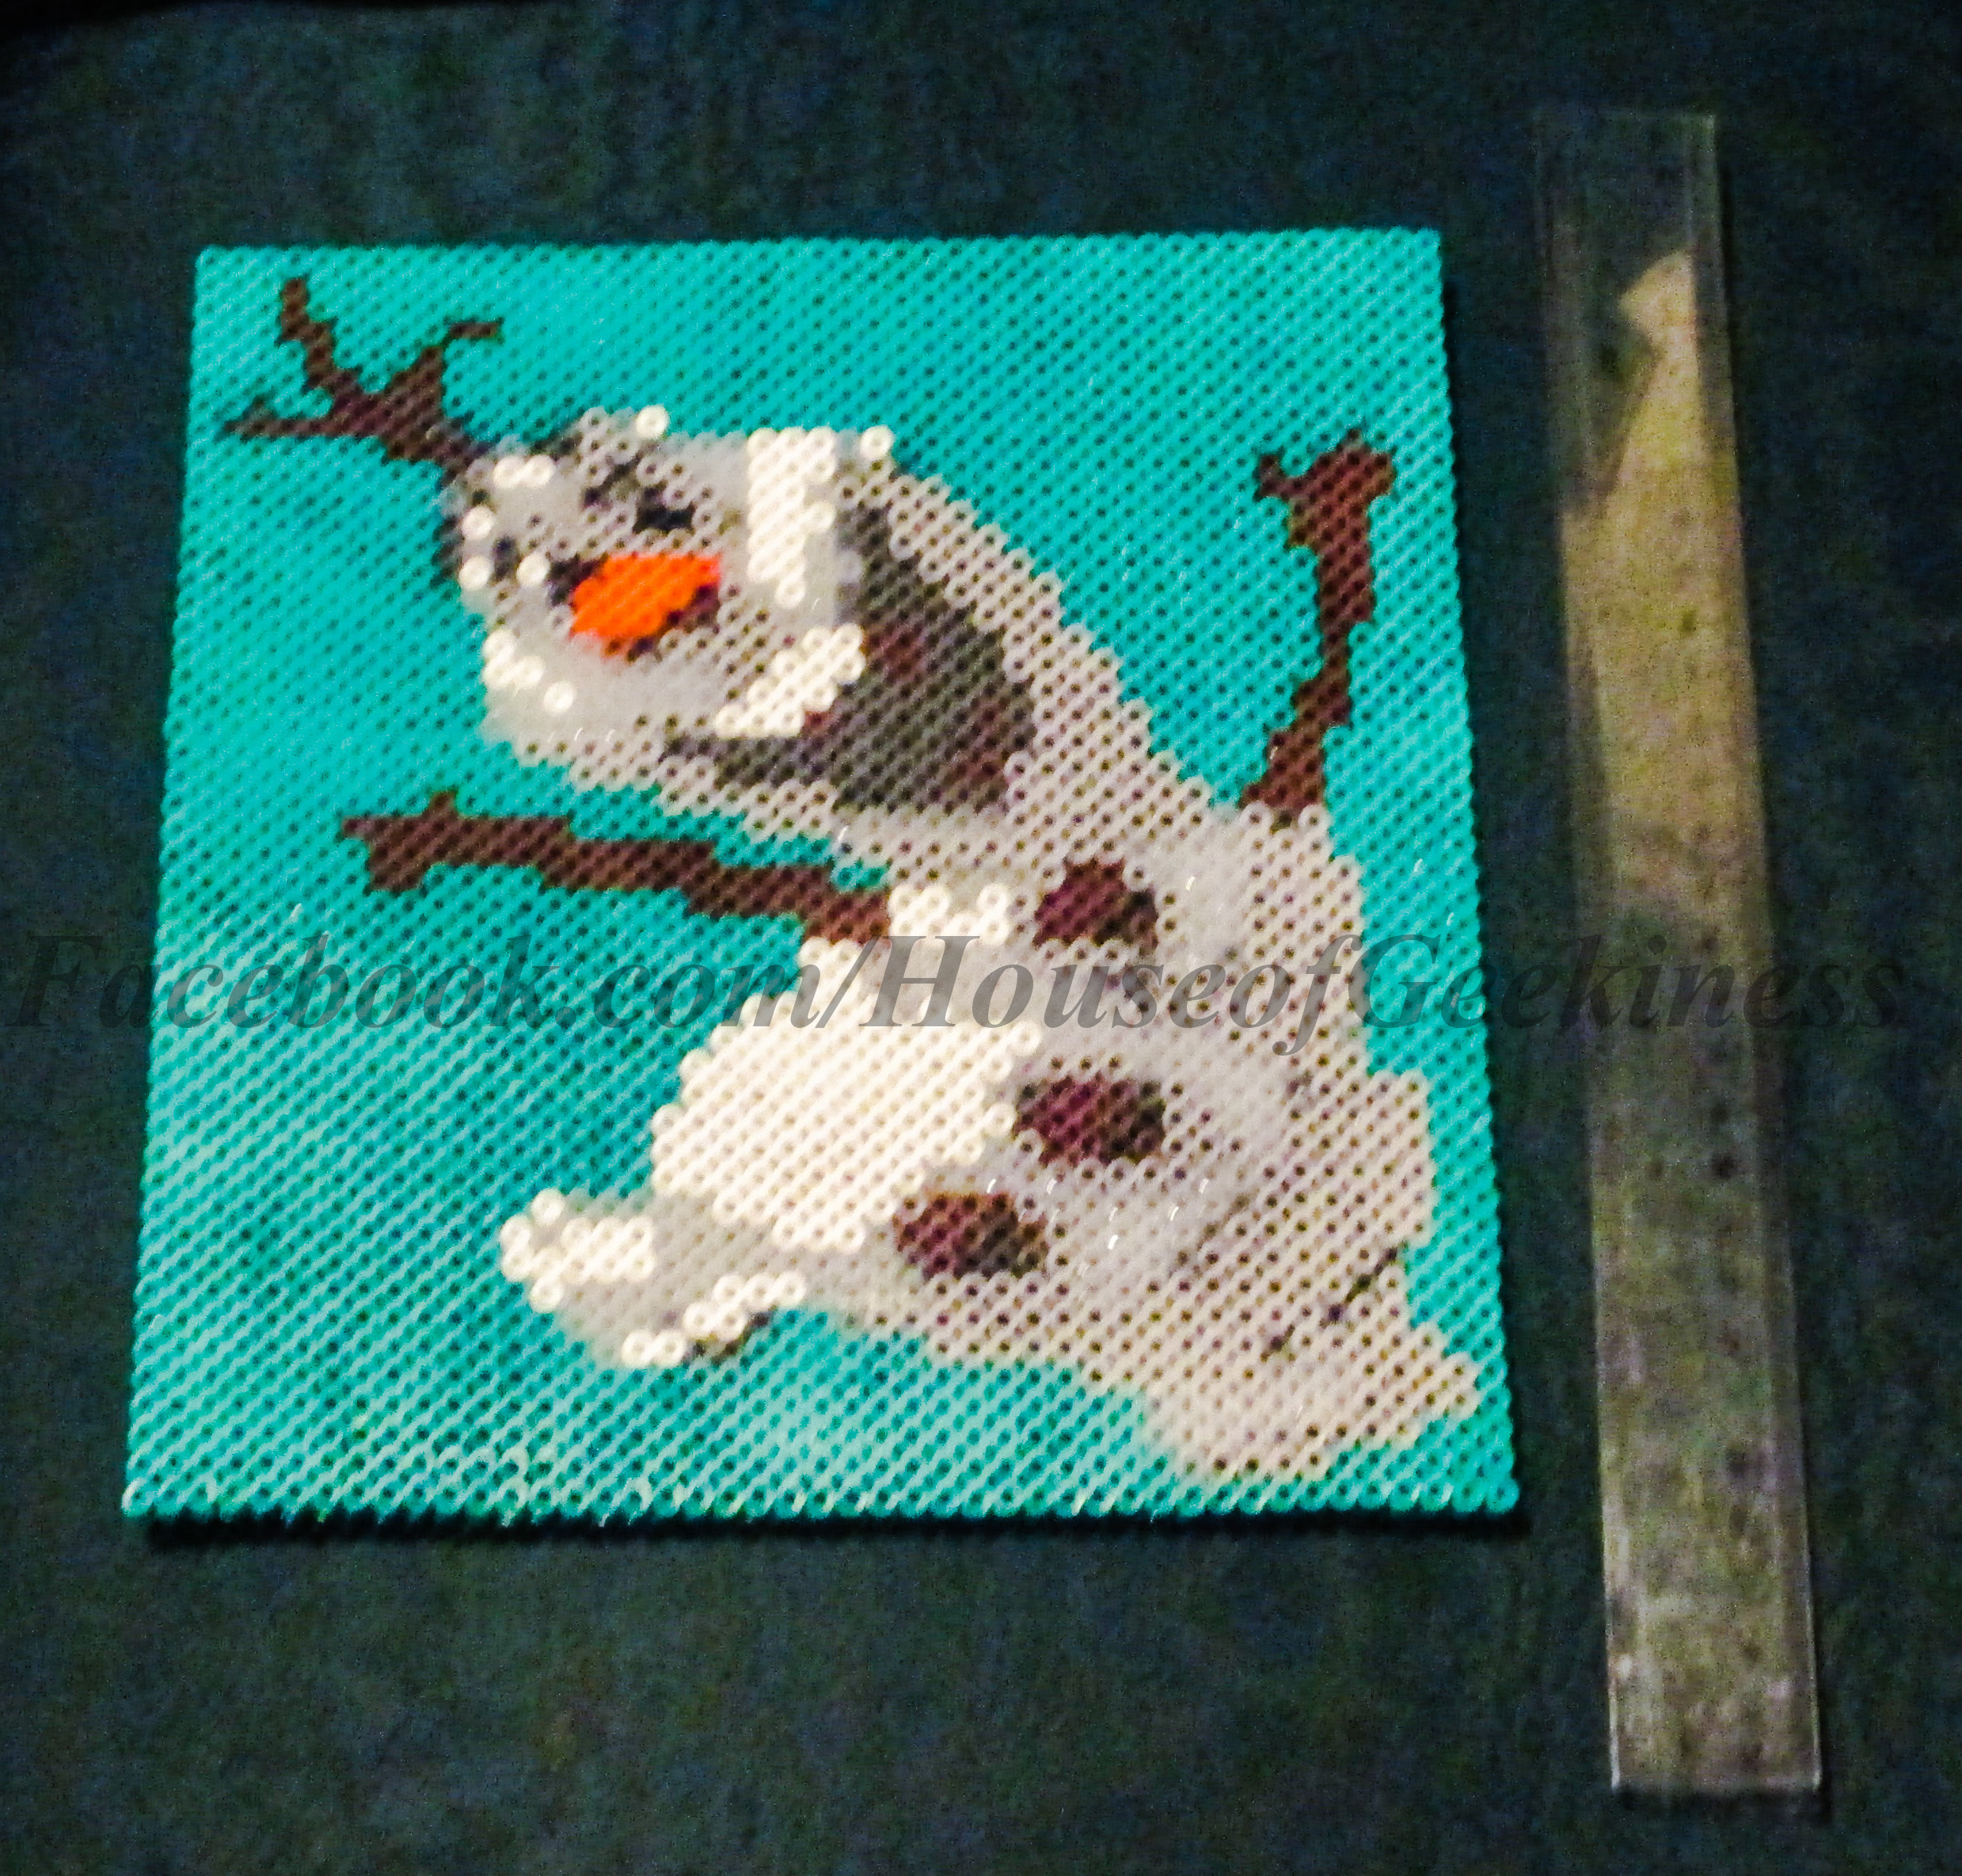 Frozen inspired olaf magnet or wall decor house of geekiness frozen inspired olaf magnet or wall decor thumbnail 1 amipublicfo Choice Image